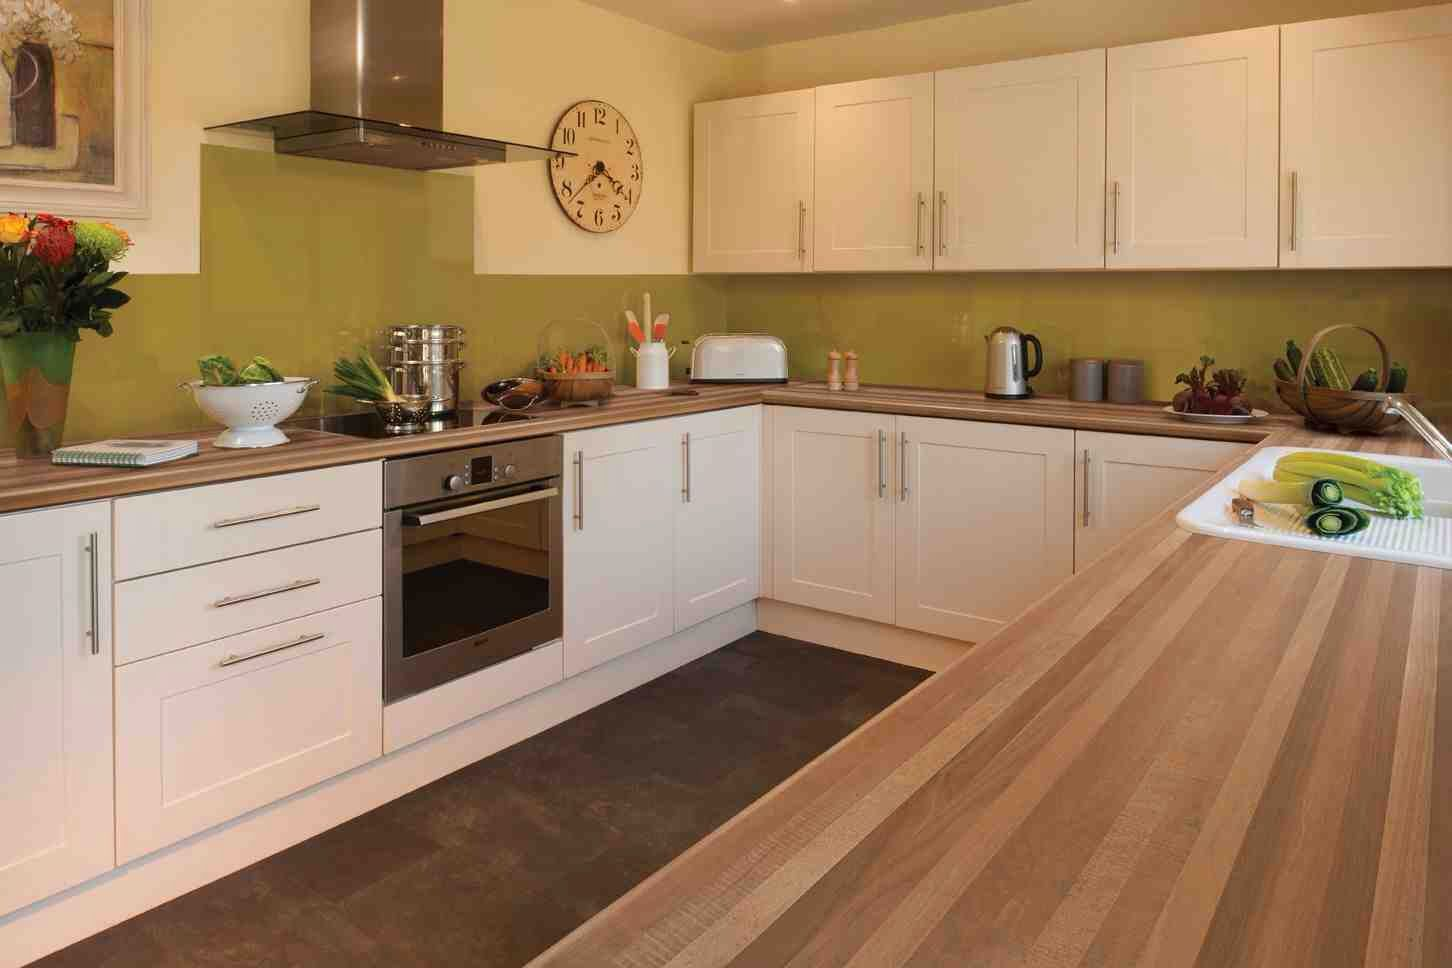 kitchen design walnut worktop shaker cream gloss ideas kitchen design walnut worktop shaker cream gloss